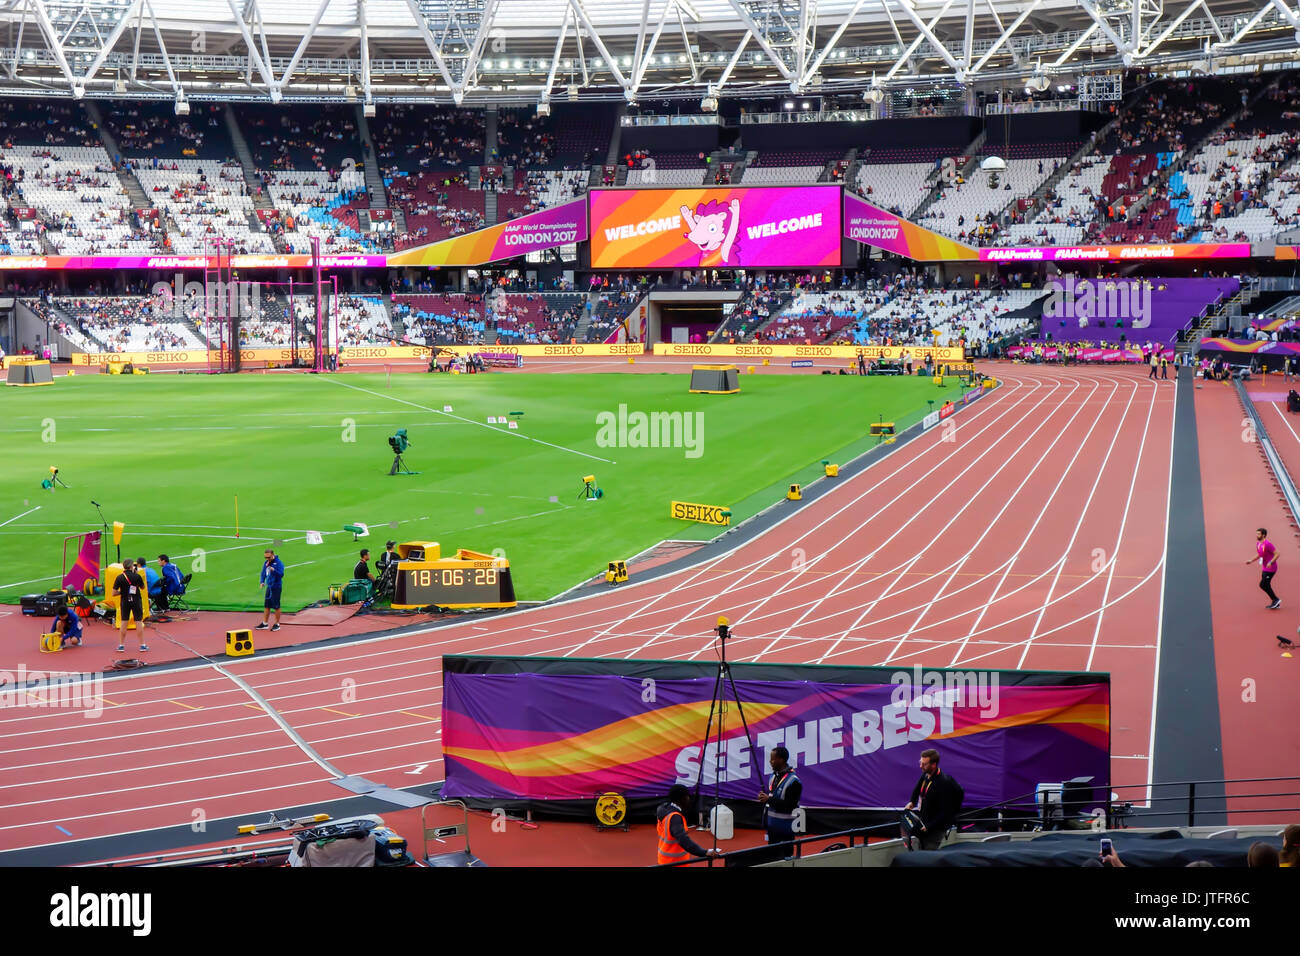 London Stadium, home of West Ham united football club in the Queen Elizabeth Olympic Park and venue for london 2017 world championships. - Stock Image